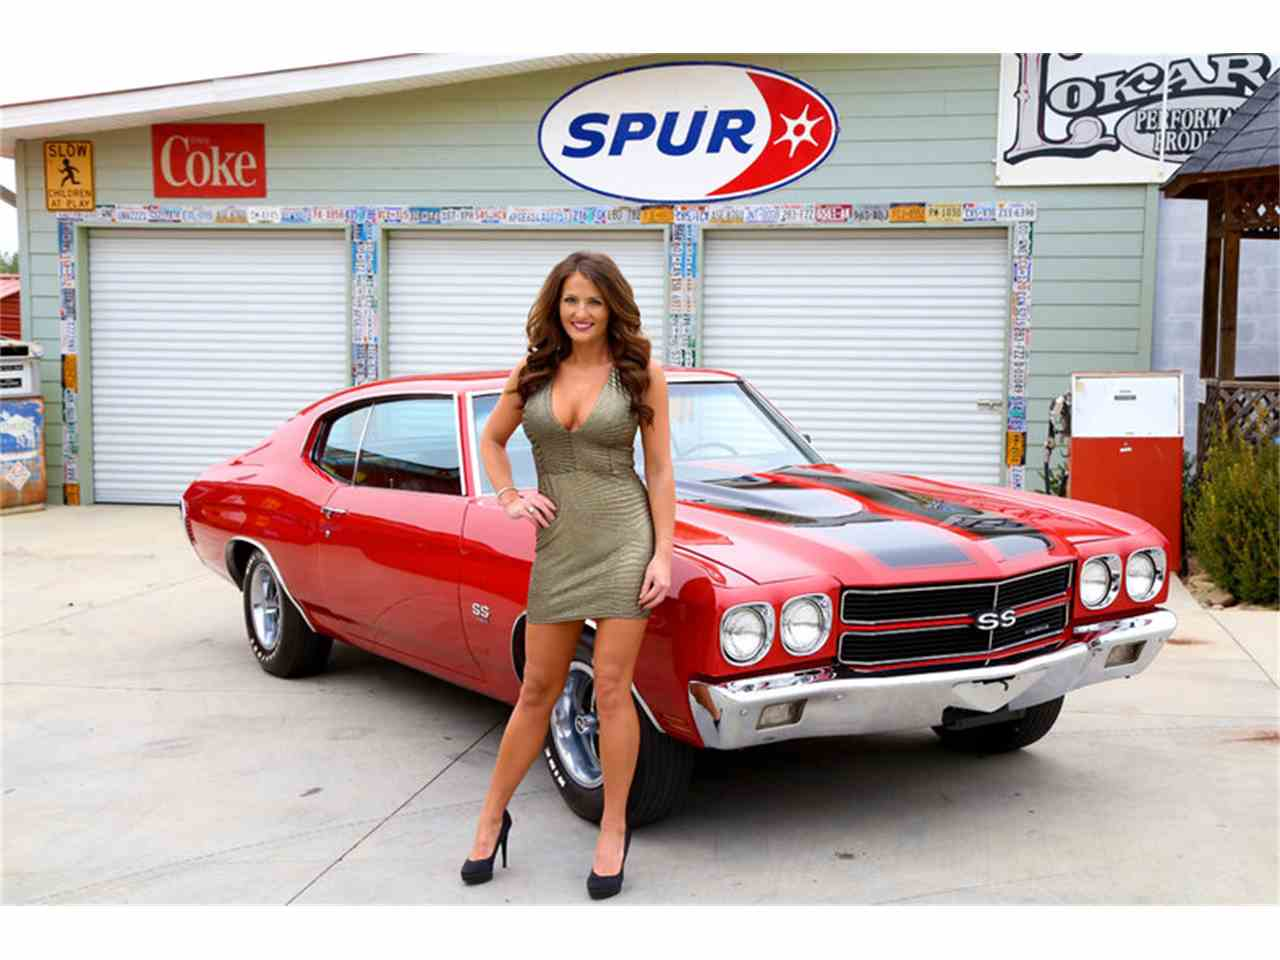 Dodge Charger History 1964 2009 in addition 1970 Dodge Charger together with Charger together with 1970 Chevrolet Chevelle Ss For Sale In Lenoir City Tennessee 37772 in addition Cc Classic Cars. on 440 dodge magnum engine for sale